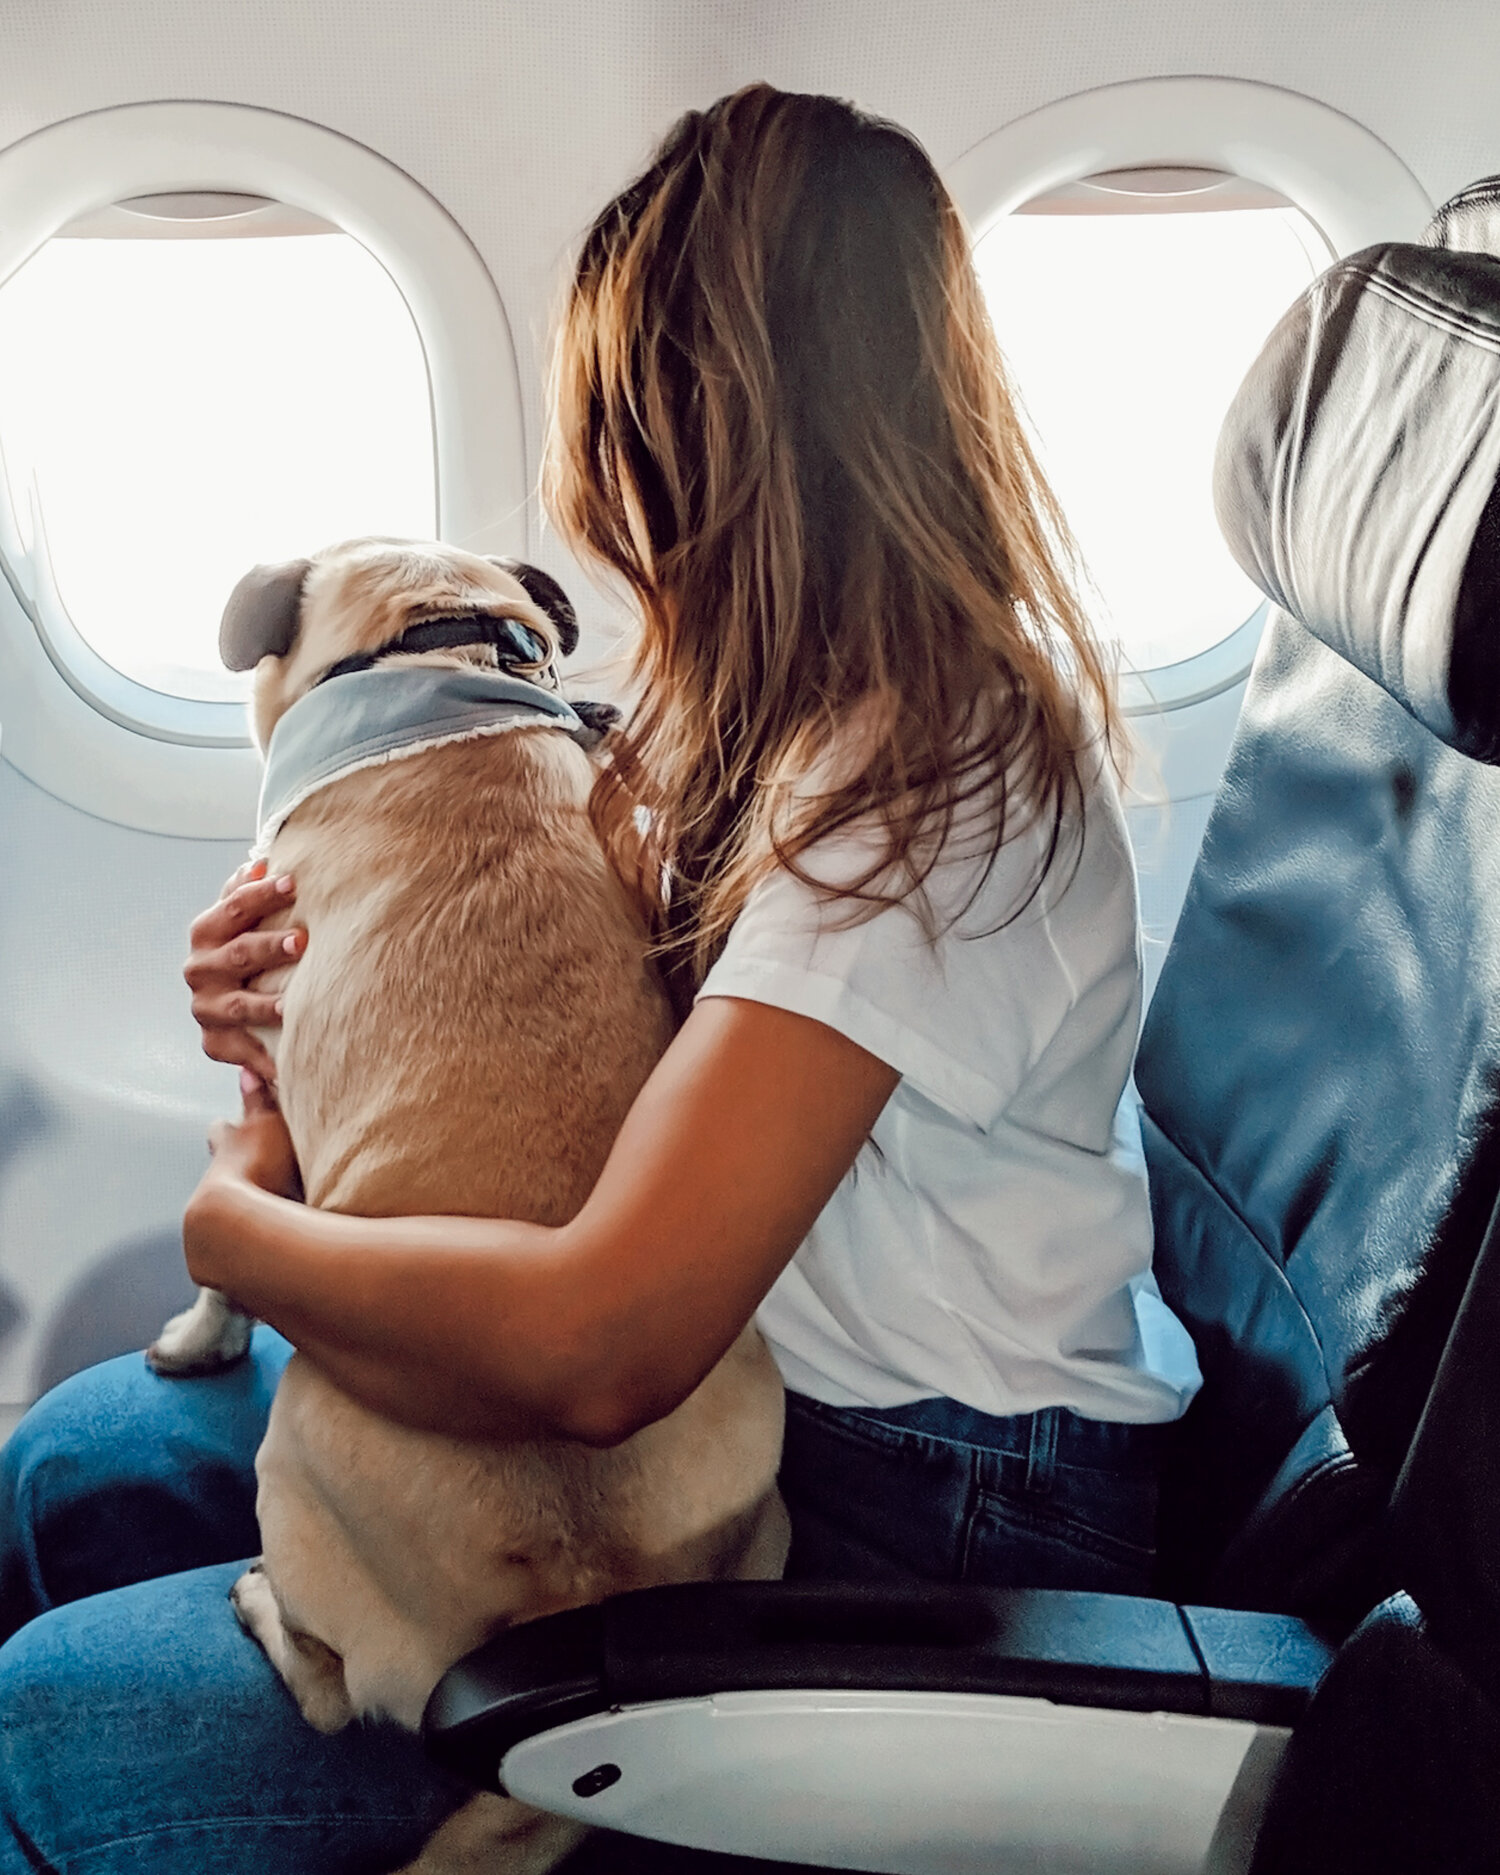 Travel with your dog-US to UK via France - A step-by-step simplified guide to travel with your dog from US to UK via France.